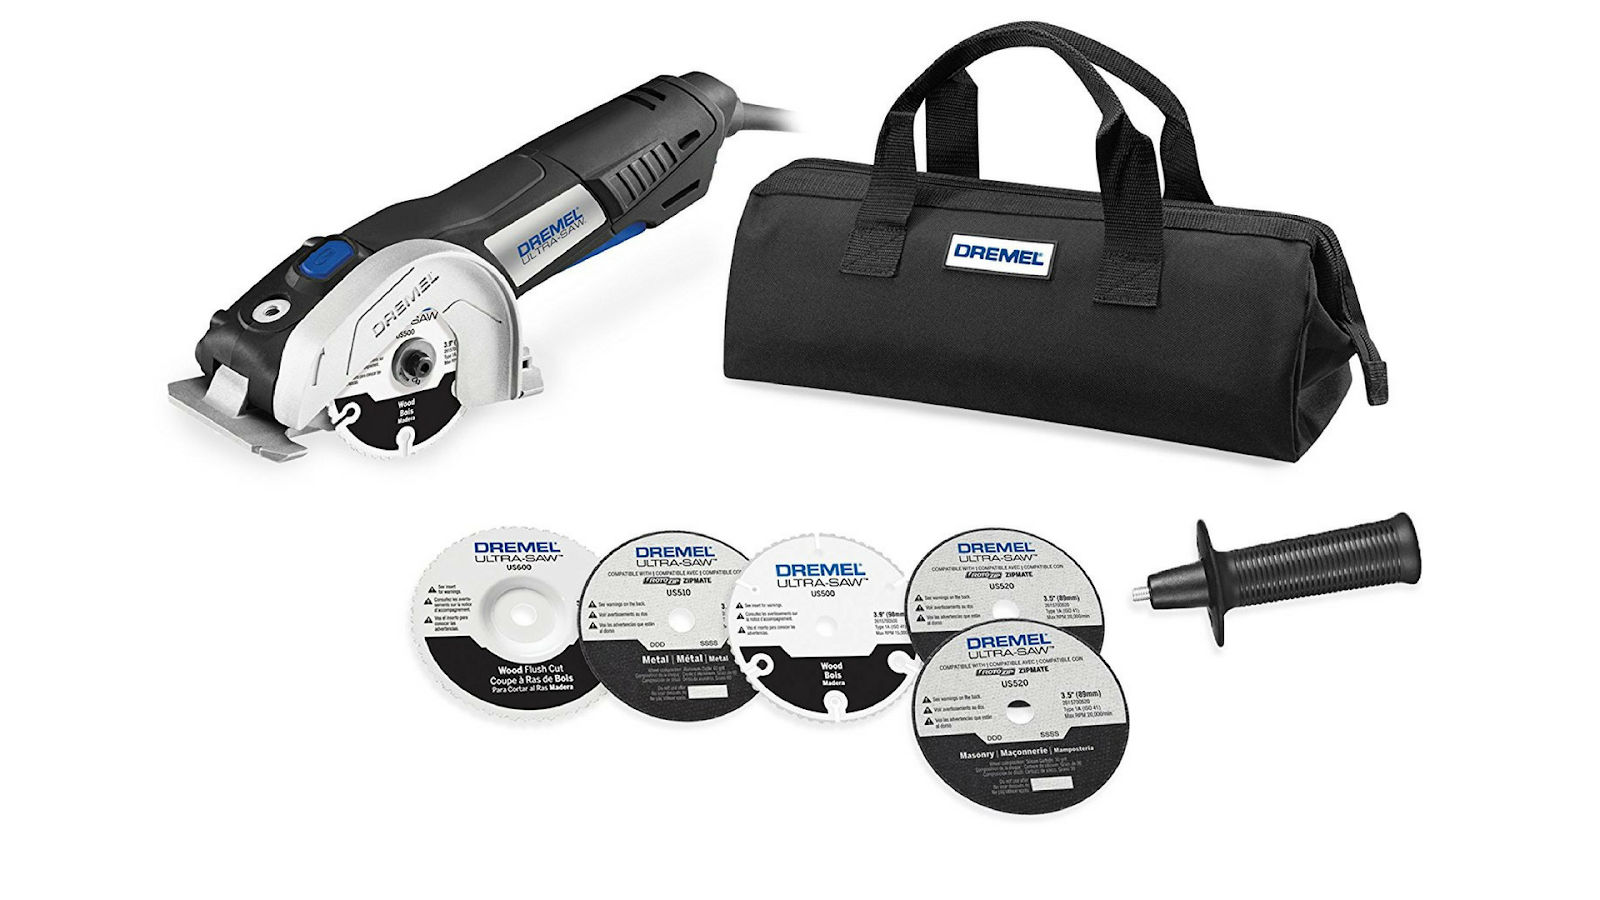 DREMEL® US40 Ultra-Saw™